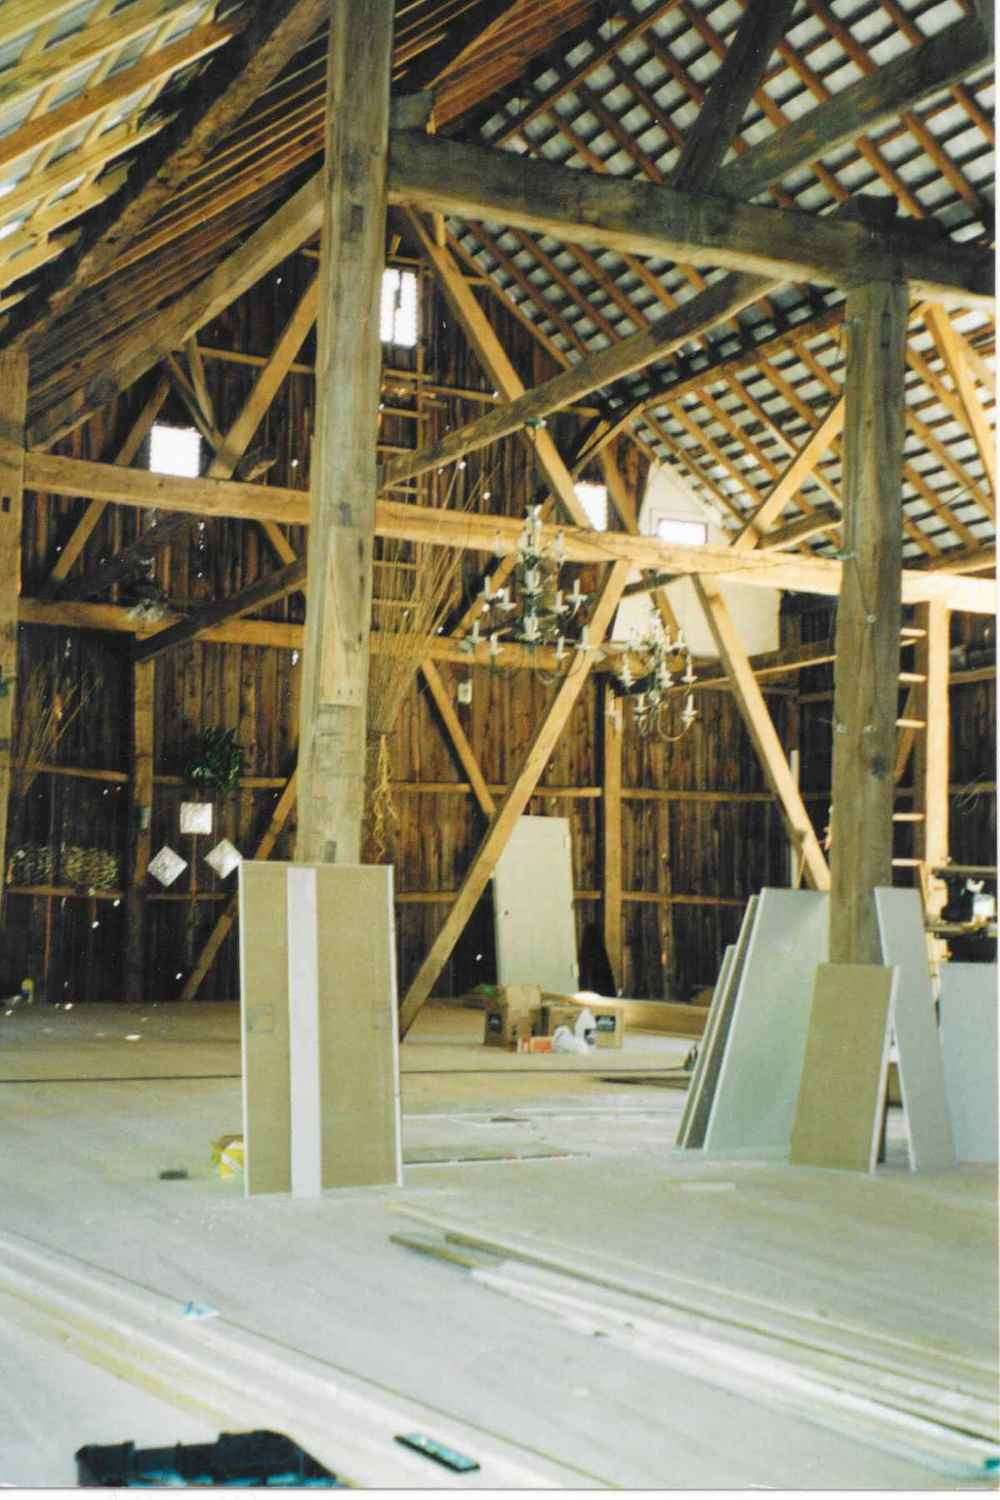 The top story of the barn at Chanteclaire Farm during renovation.  The ceiling work has been completed, and work has begun on installing the gorgeous Ash hardwood floors.